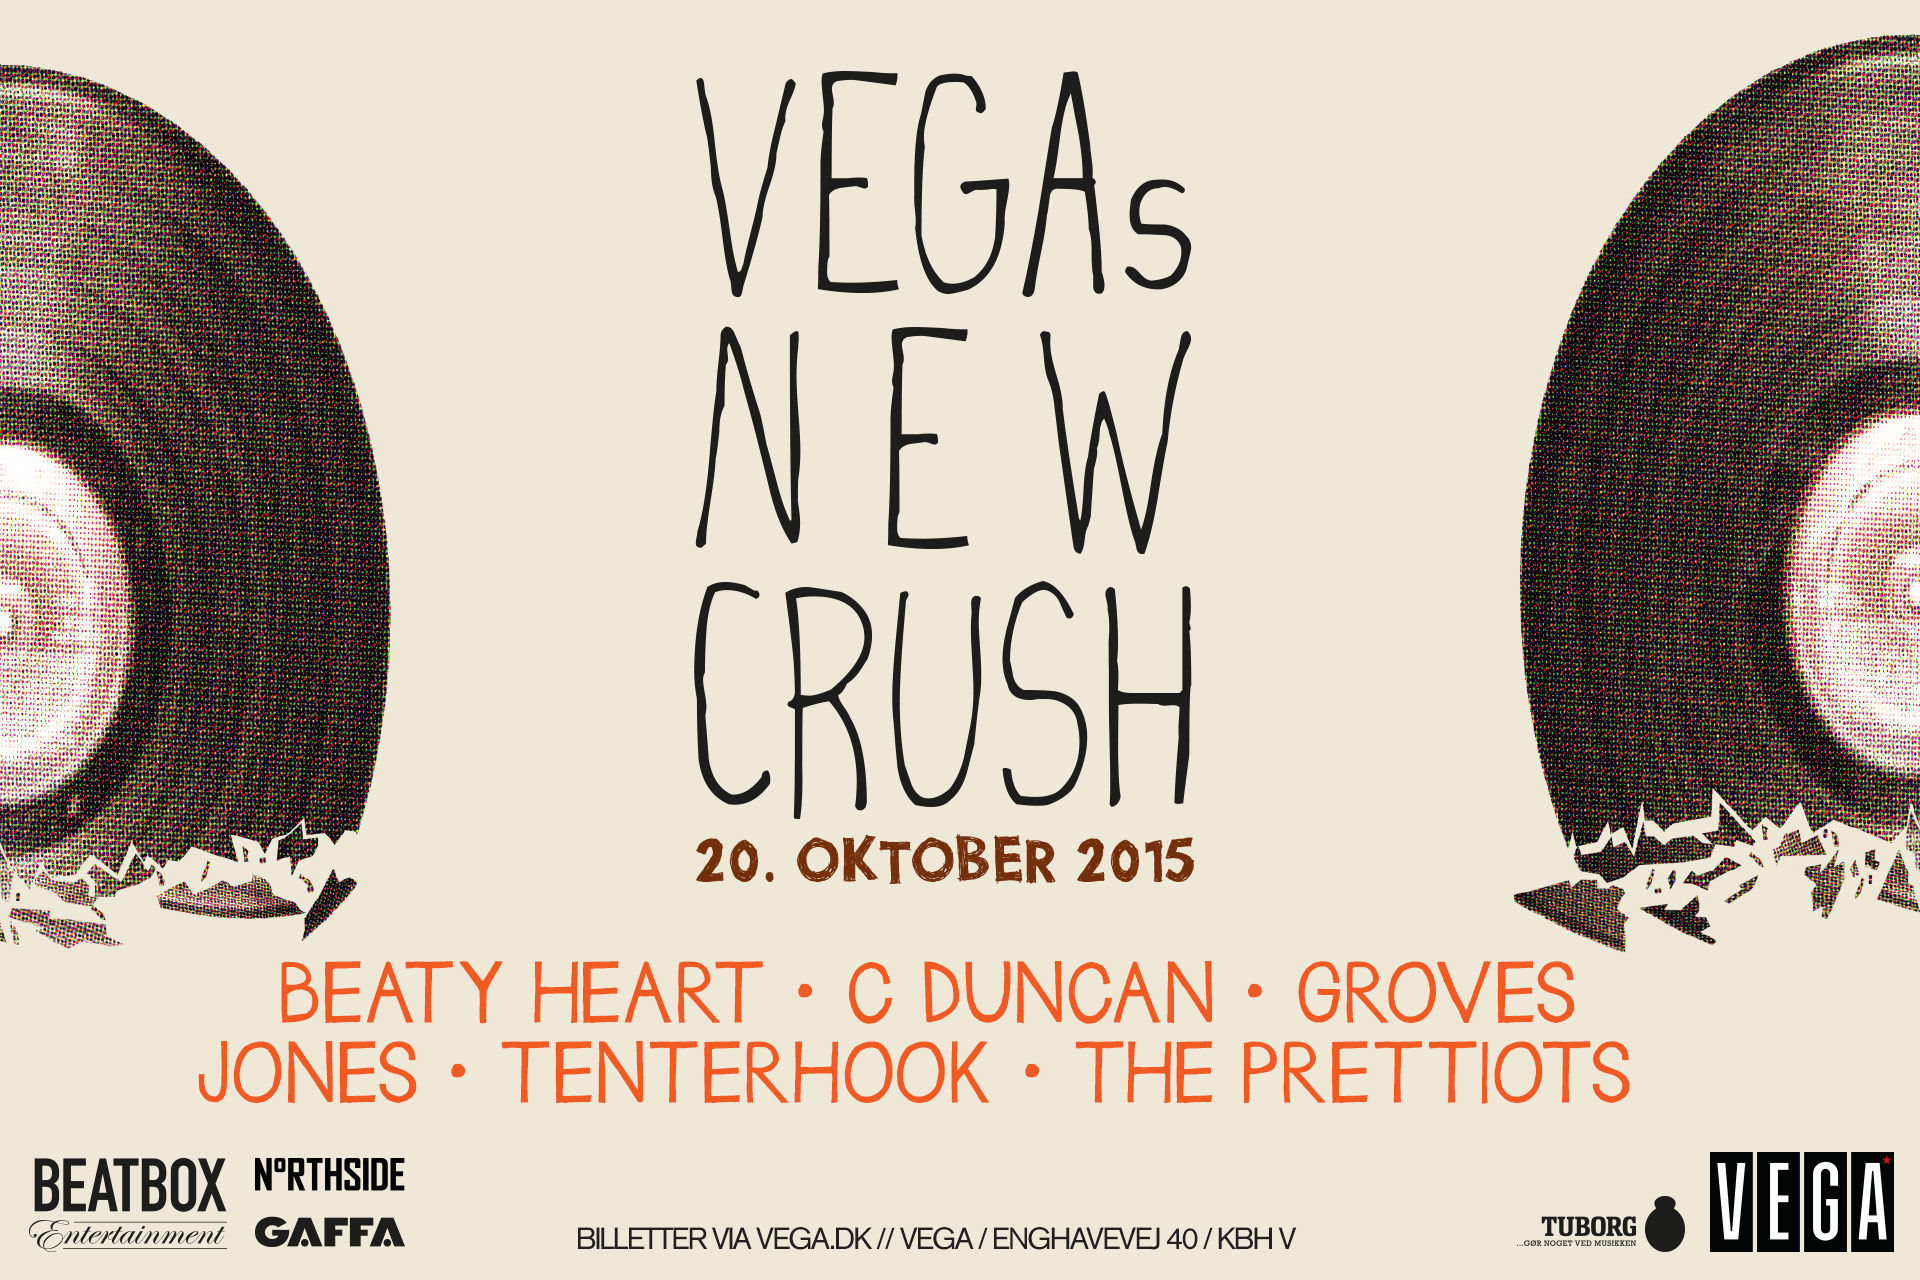 VEGAs New Crush - 20. oktober 2015